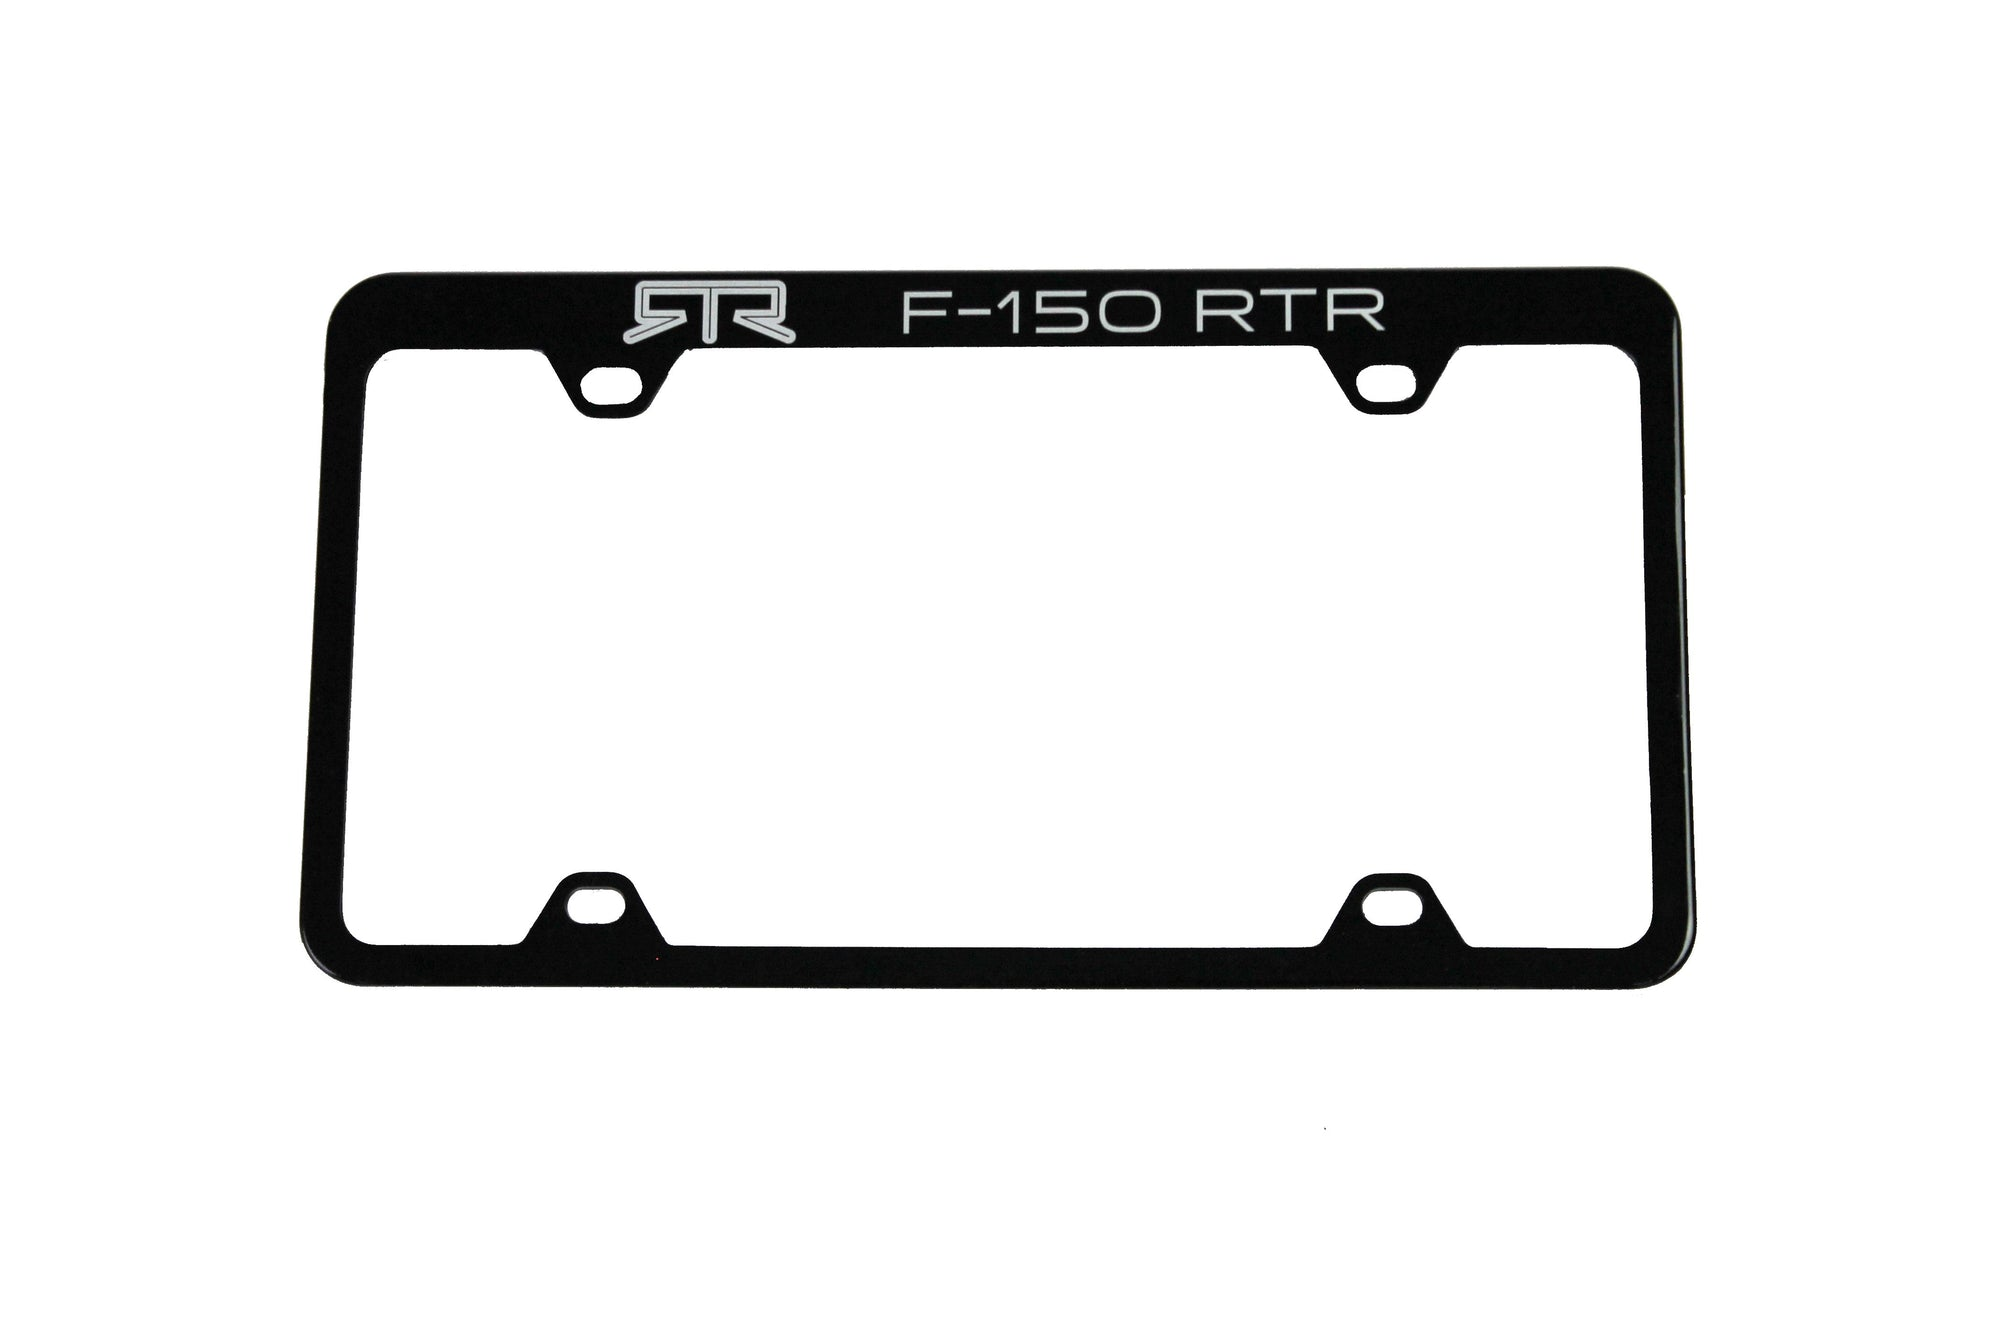 F-150 RTR License Plate Frame - RTR Vehicles